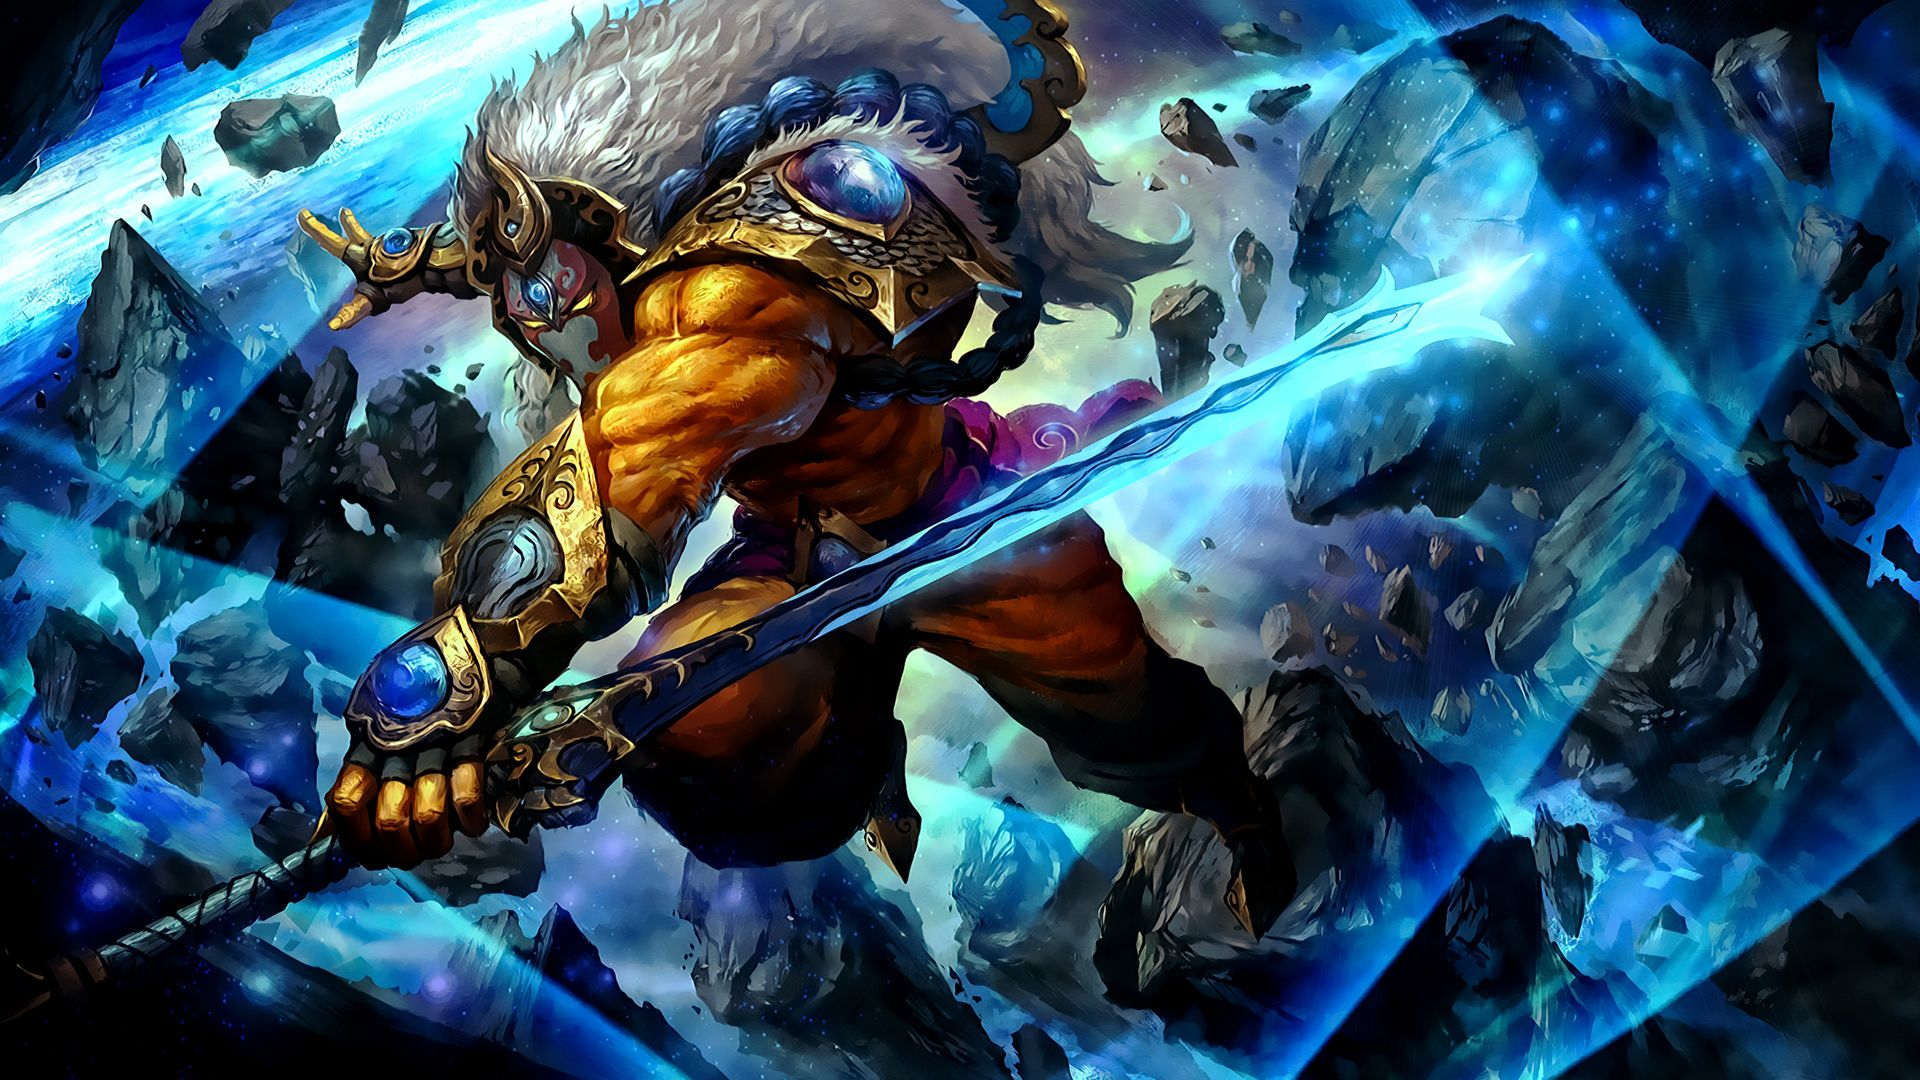 Dota 2 Juggernaut Wallpapers High Definition Sdeerwallpaper